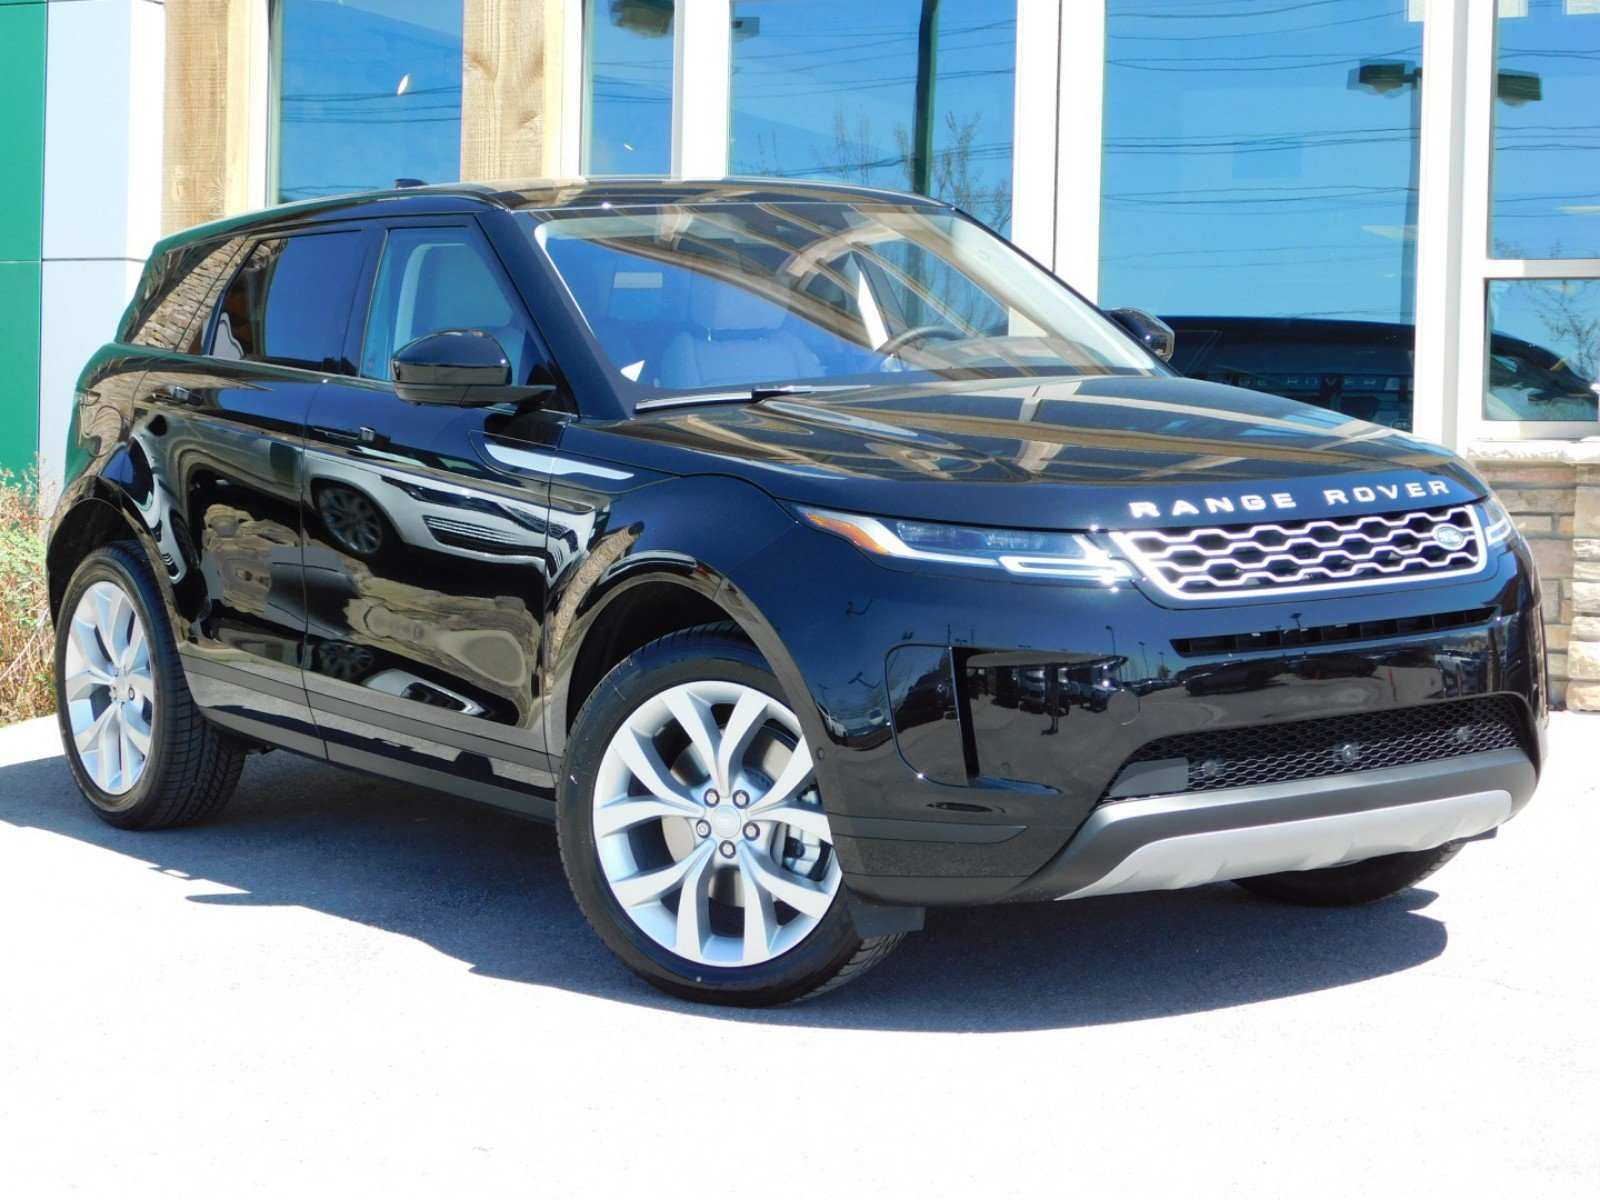 28 New 2020 Range Rover Evoque Xl Exterior